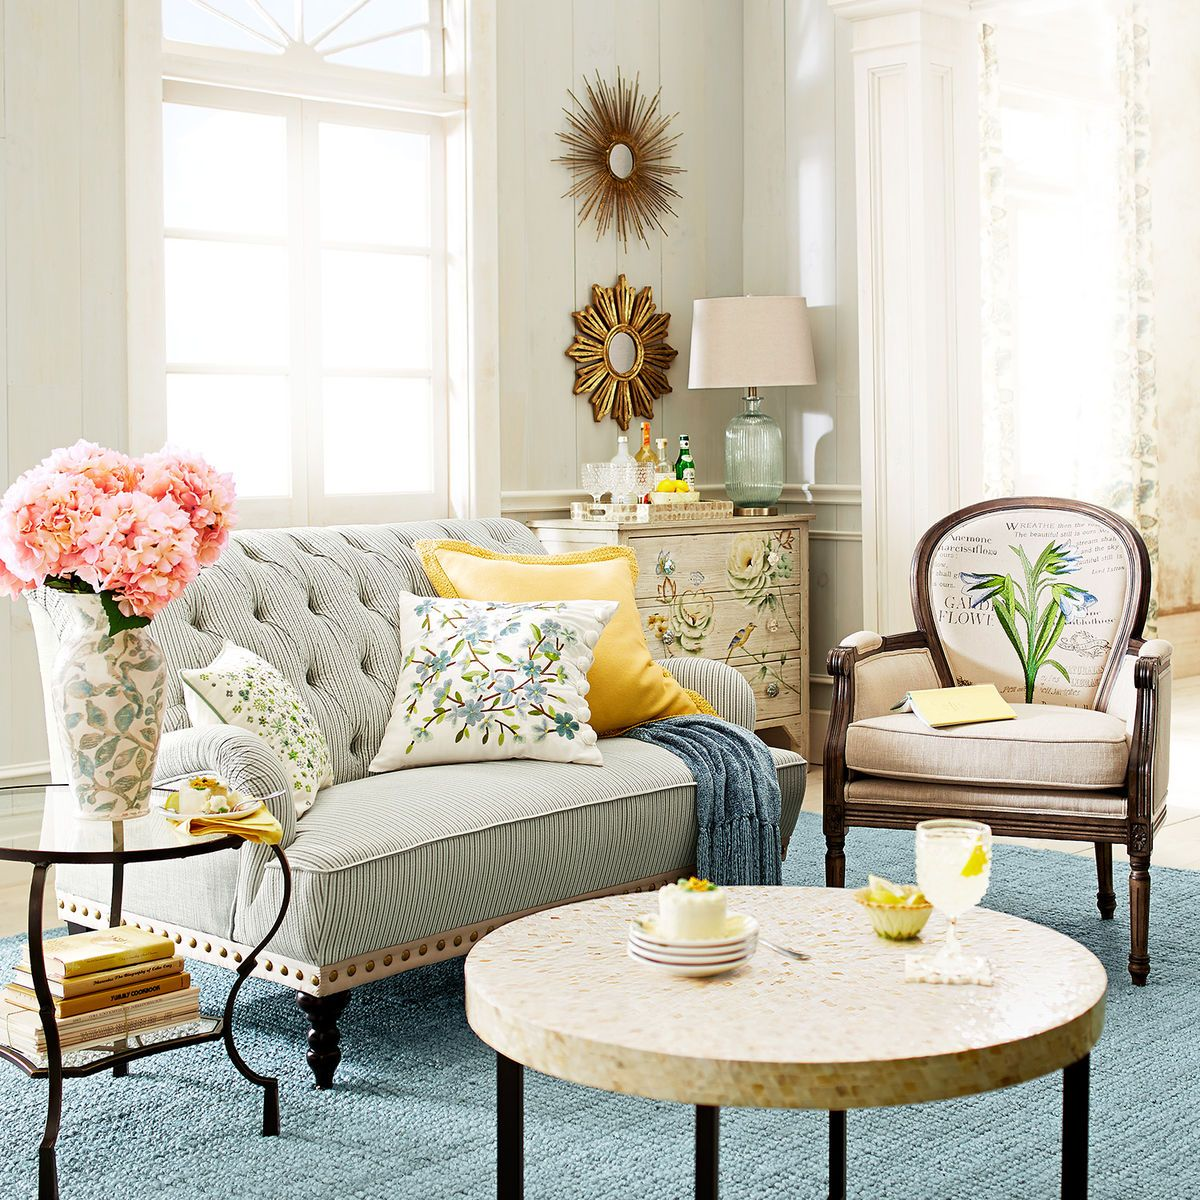 Pier One Living Room Ideas: Spring Meadow Embellished Floral Bloom Pillow